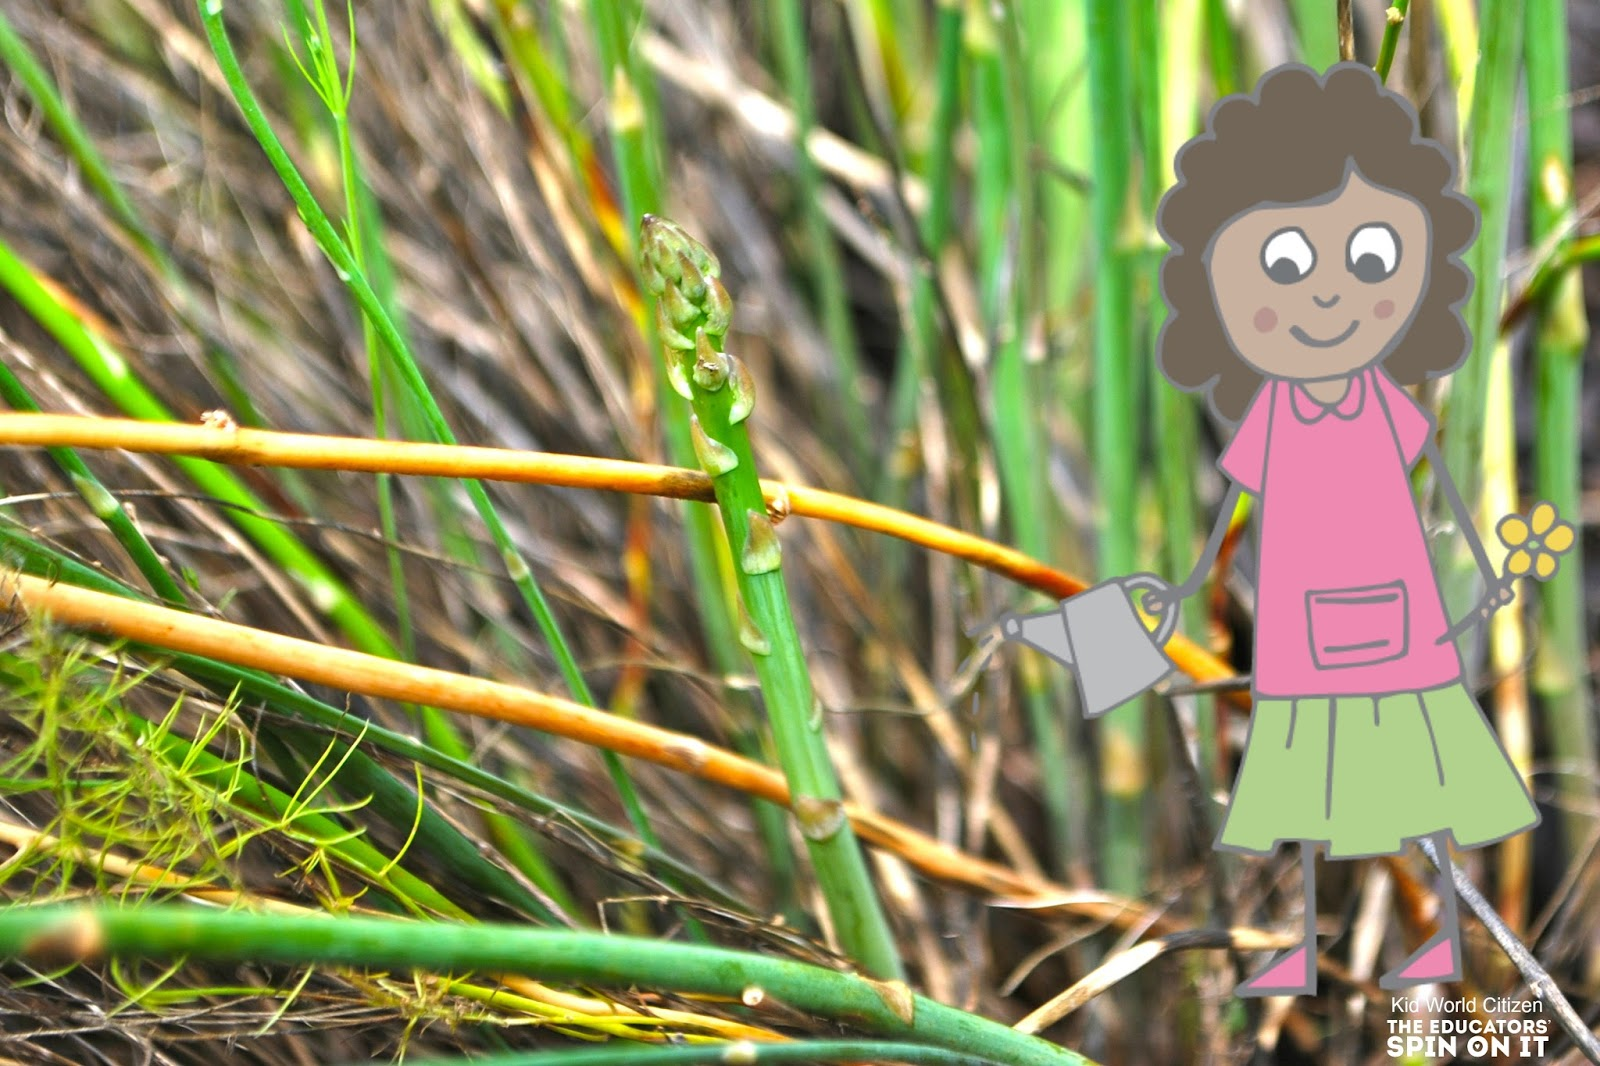 Asparugus is an easy vegetable for kids to help harvest and prepare for dinnertime